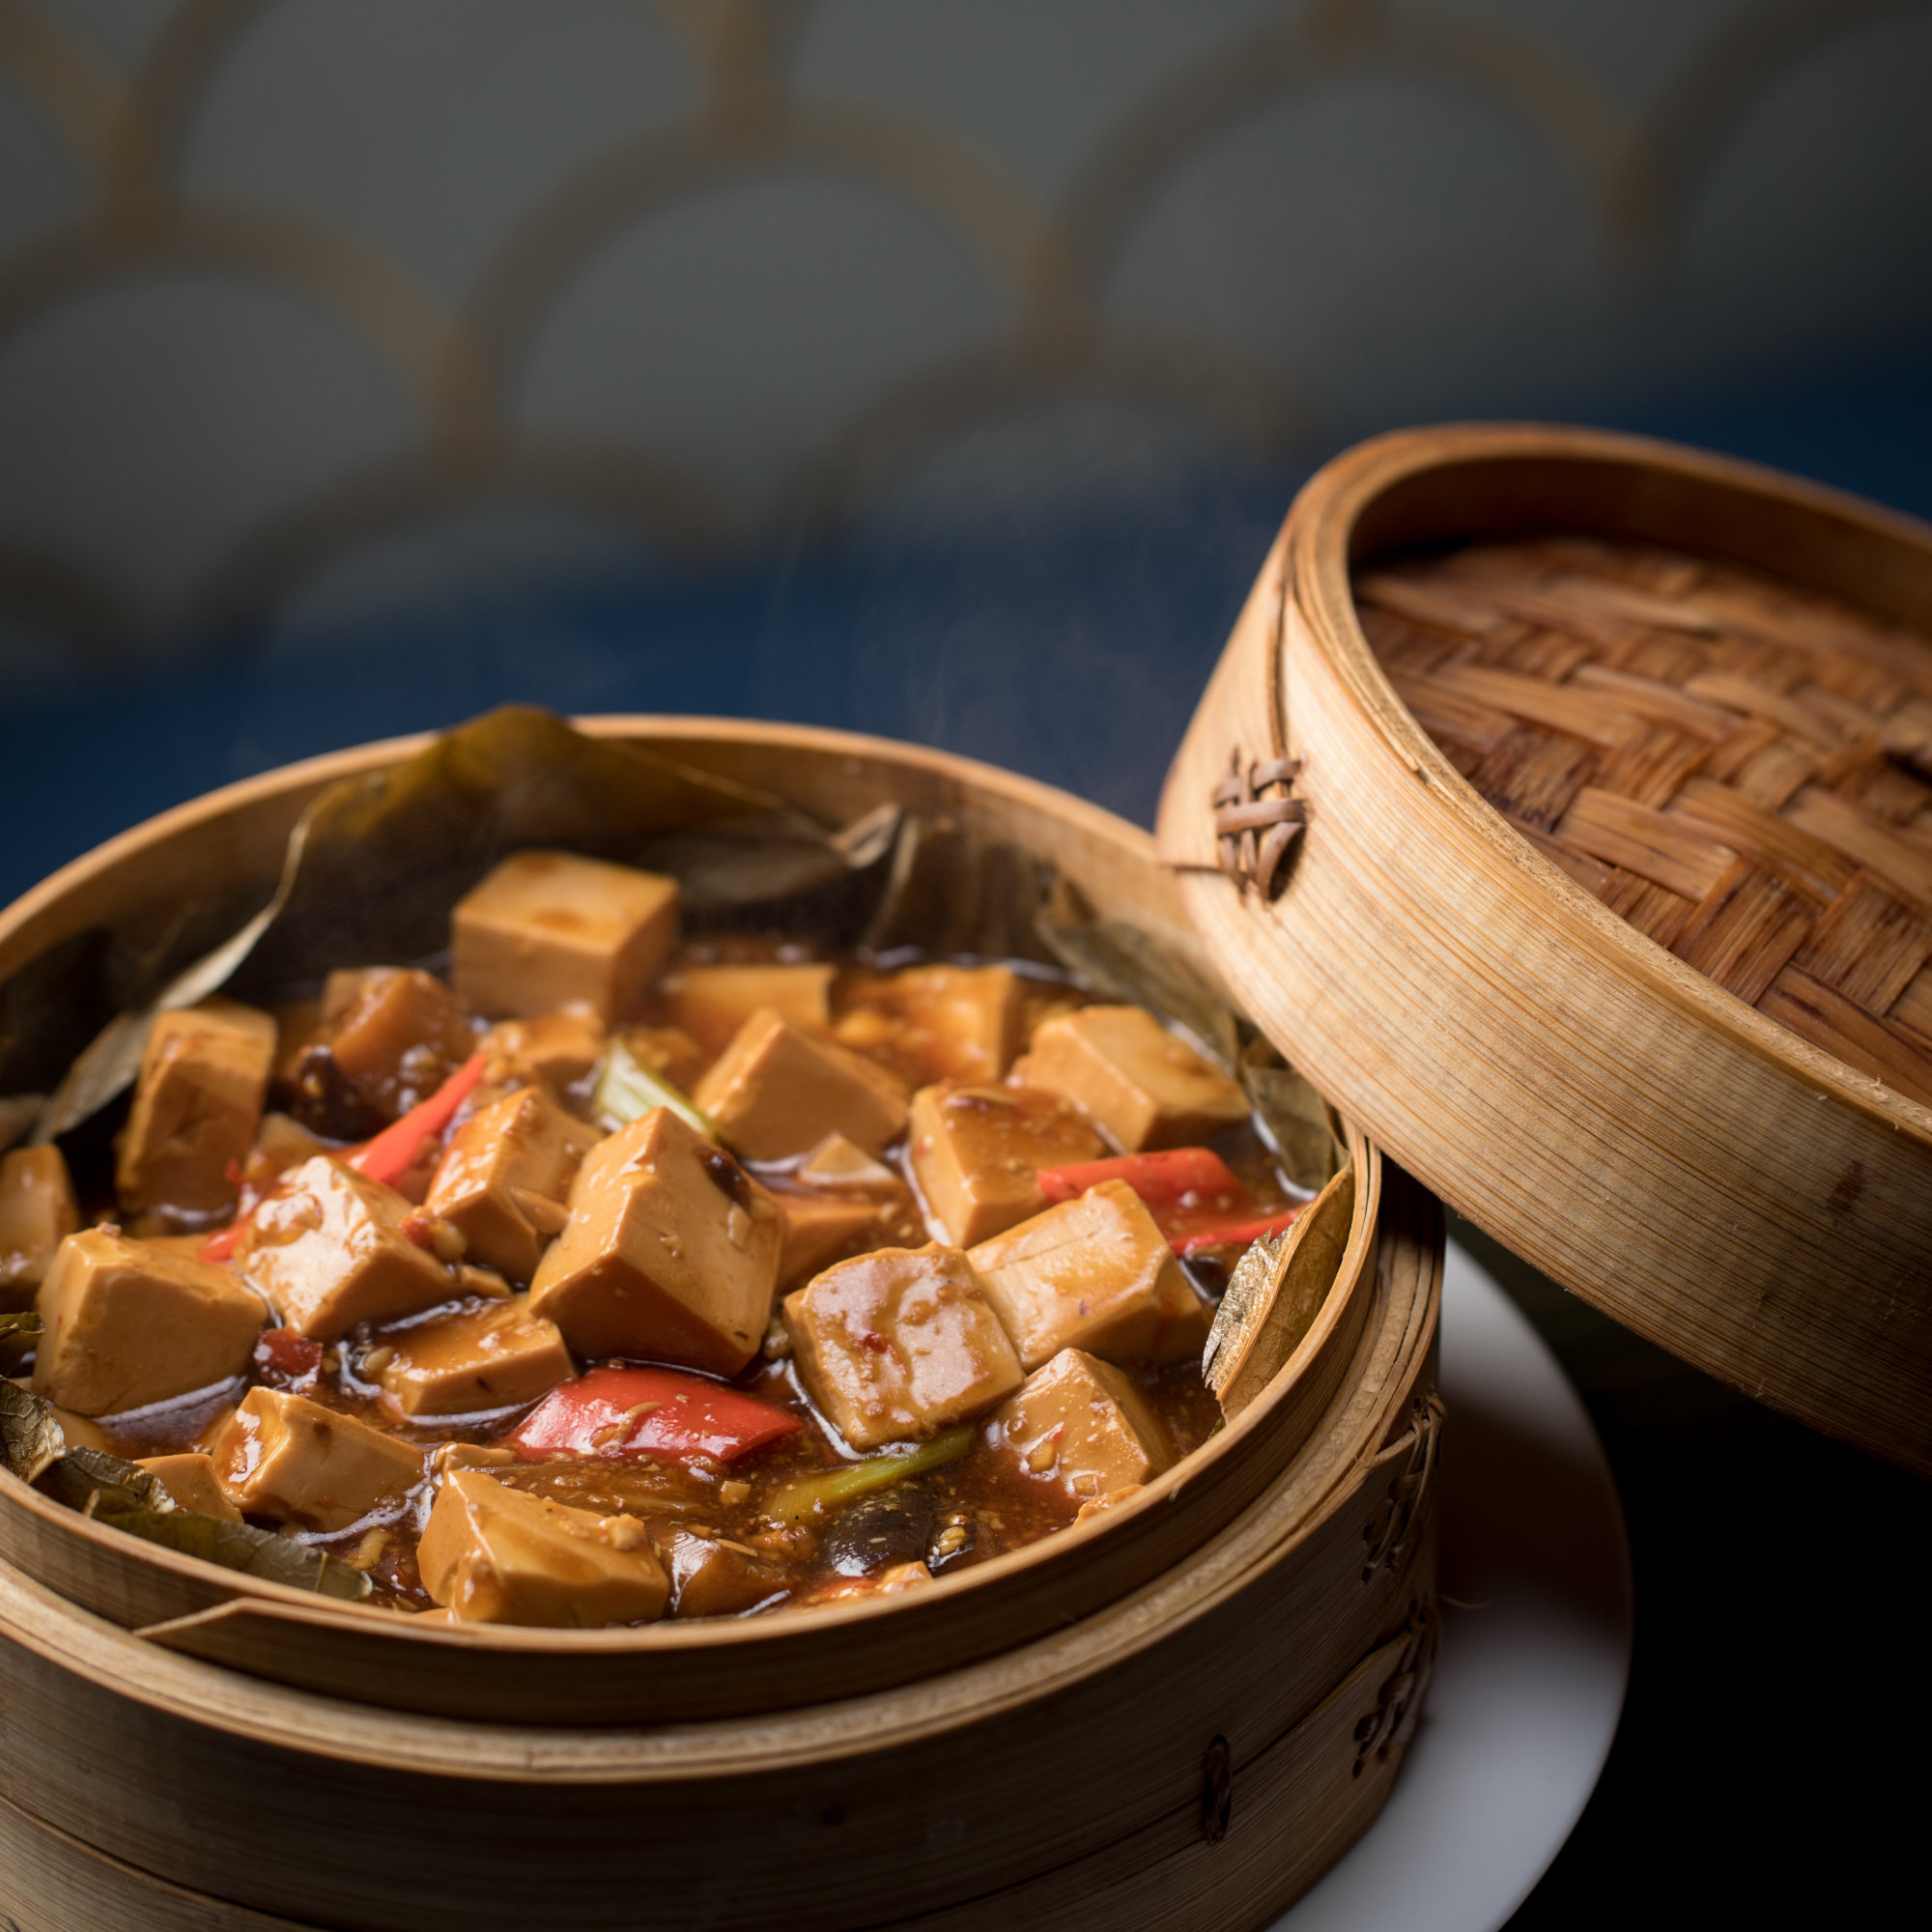 Steam Tofu With Vegetable In Lotus Leaf